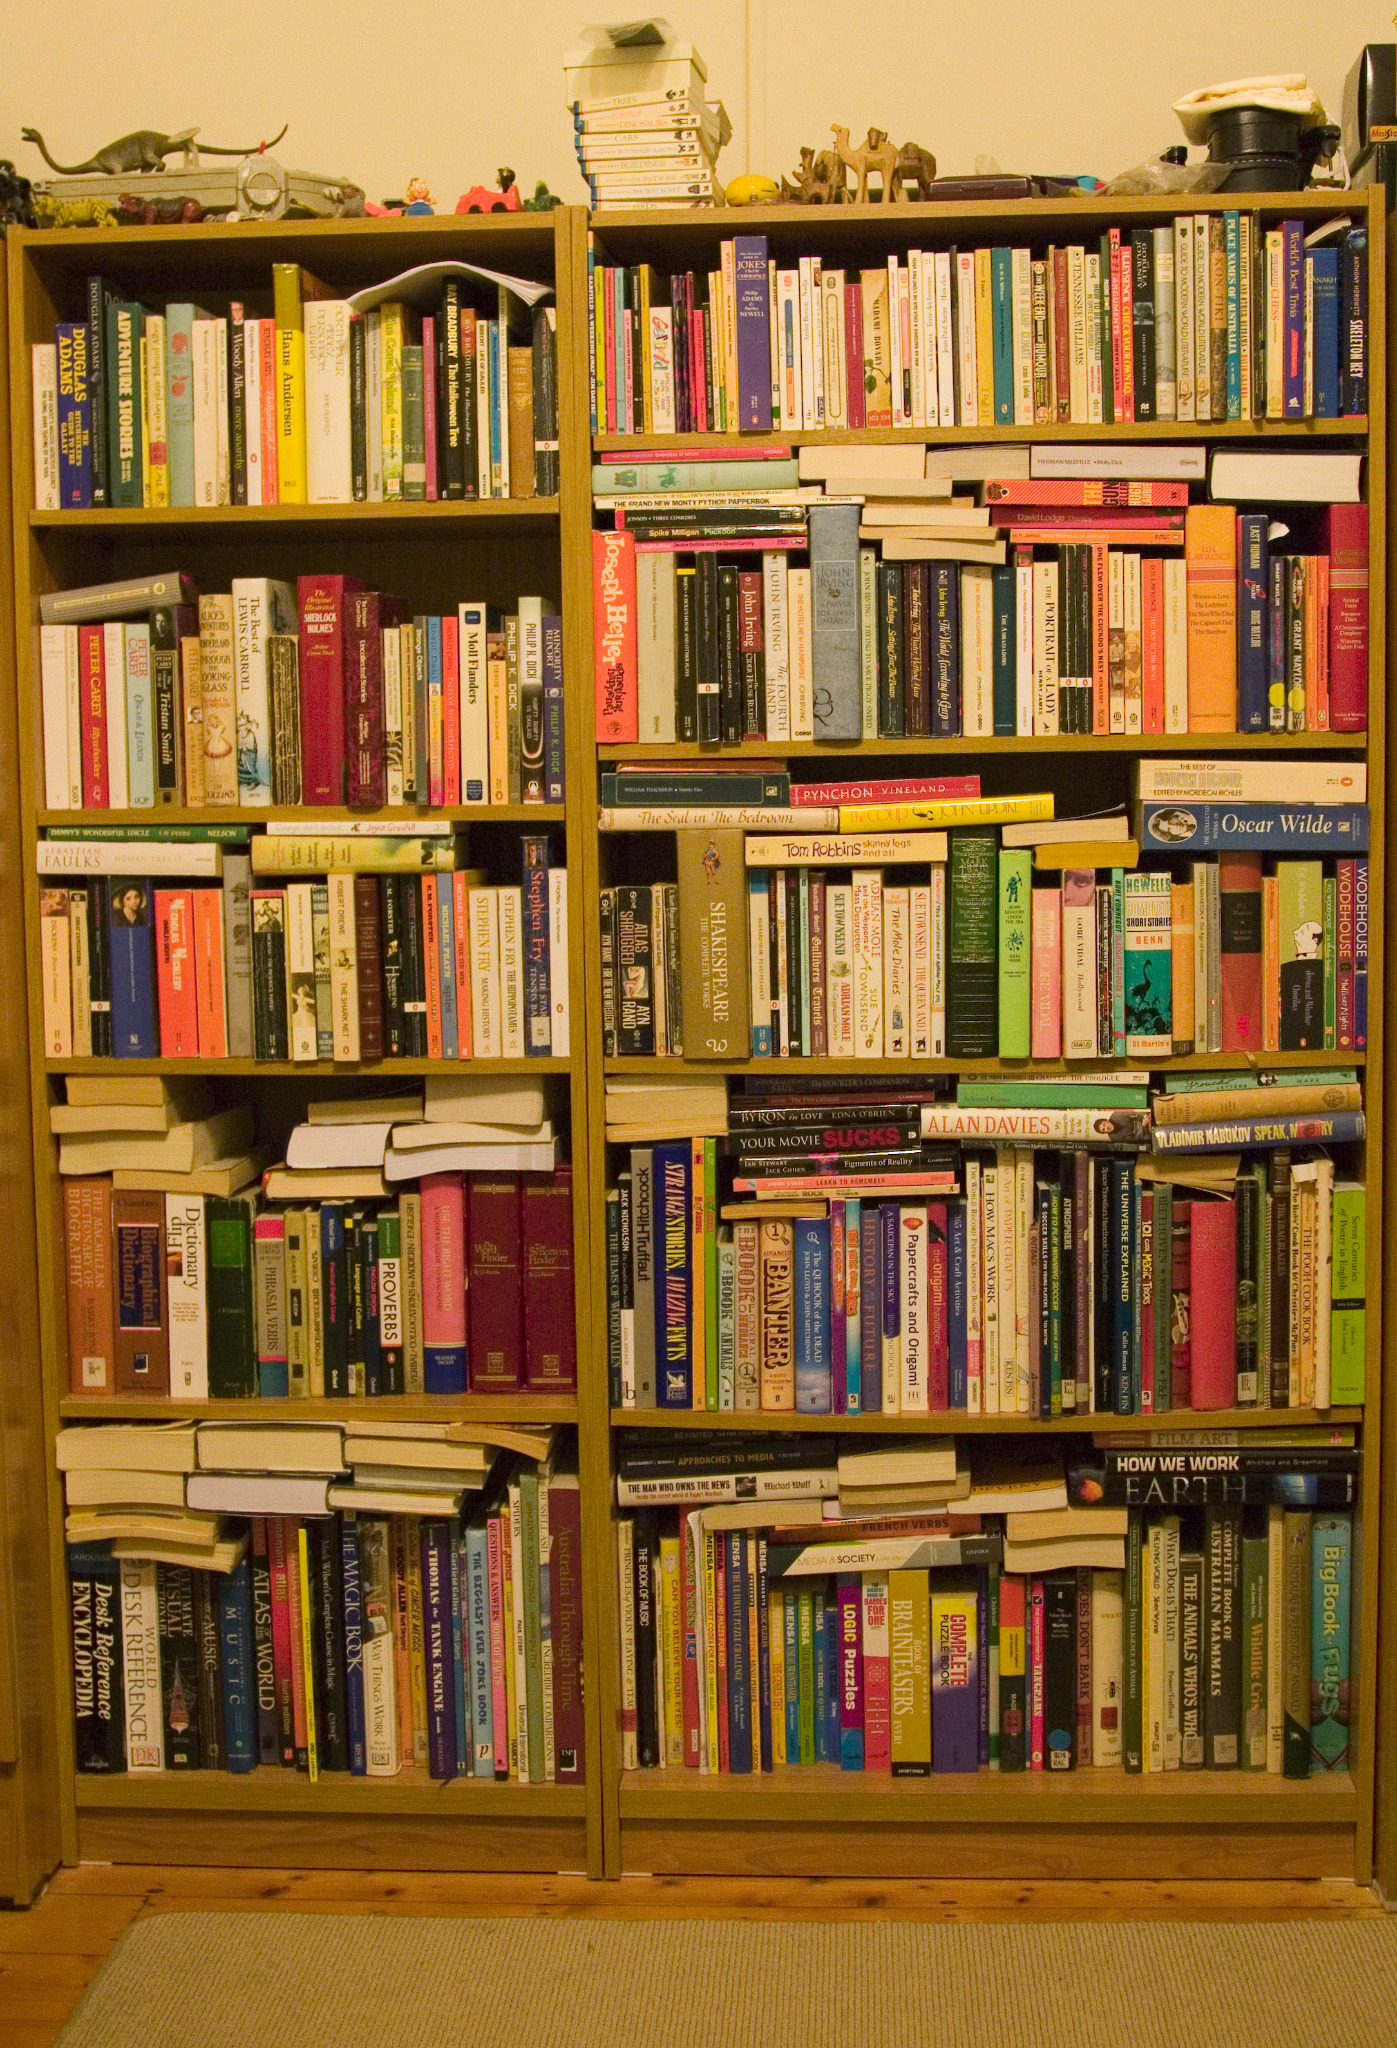 @PenguinUKBooks My shelves from approximately 1.5 years ago. Books have been rearranged/added since. http://t.co/NPMogfvN